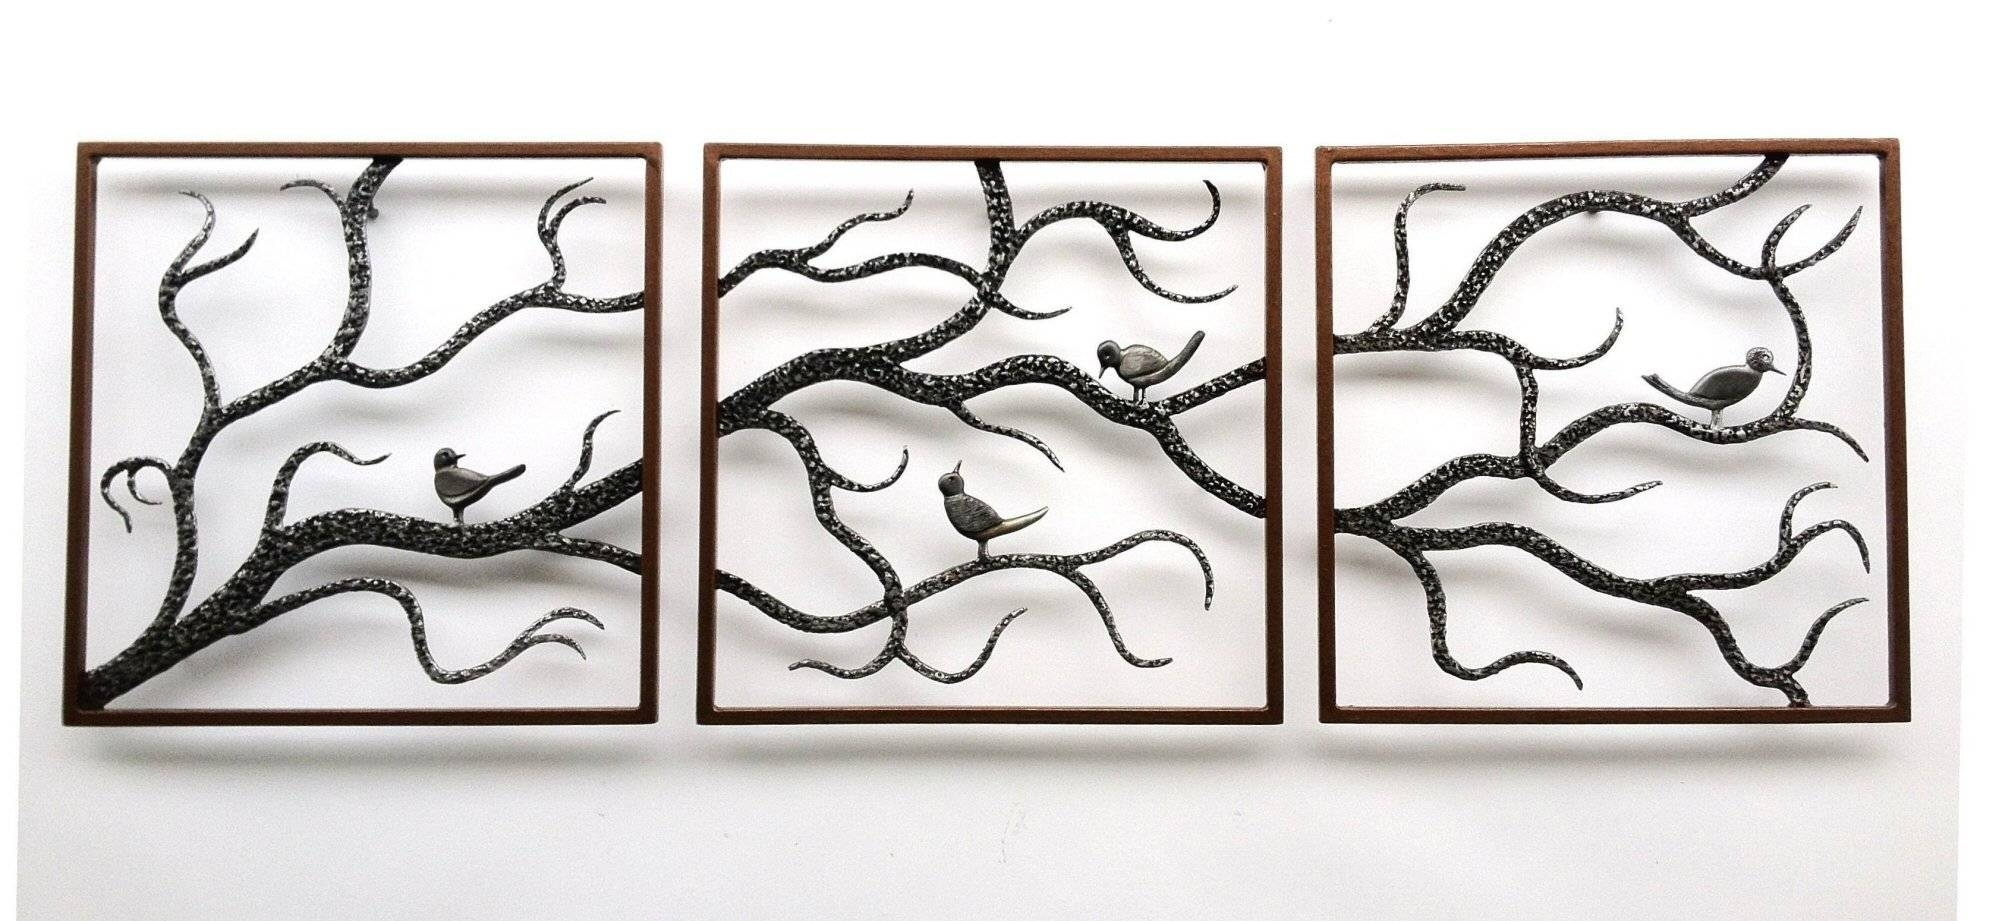 Wall Art Designs: Metal Wall Art Trees Birch Three Framed Cute Intended For Most Up To Date Branch Metal Wall Art (View 19 of 20)